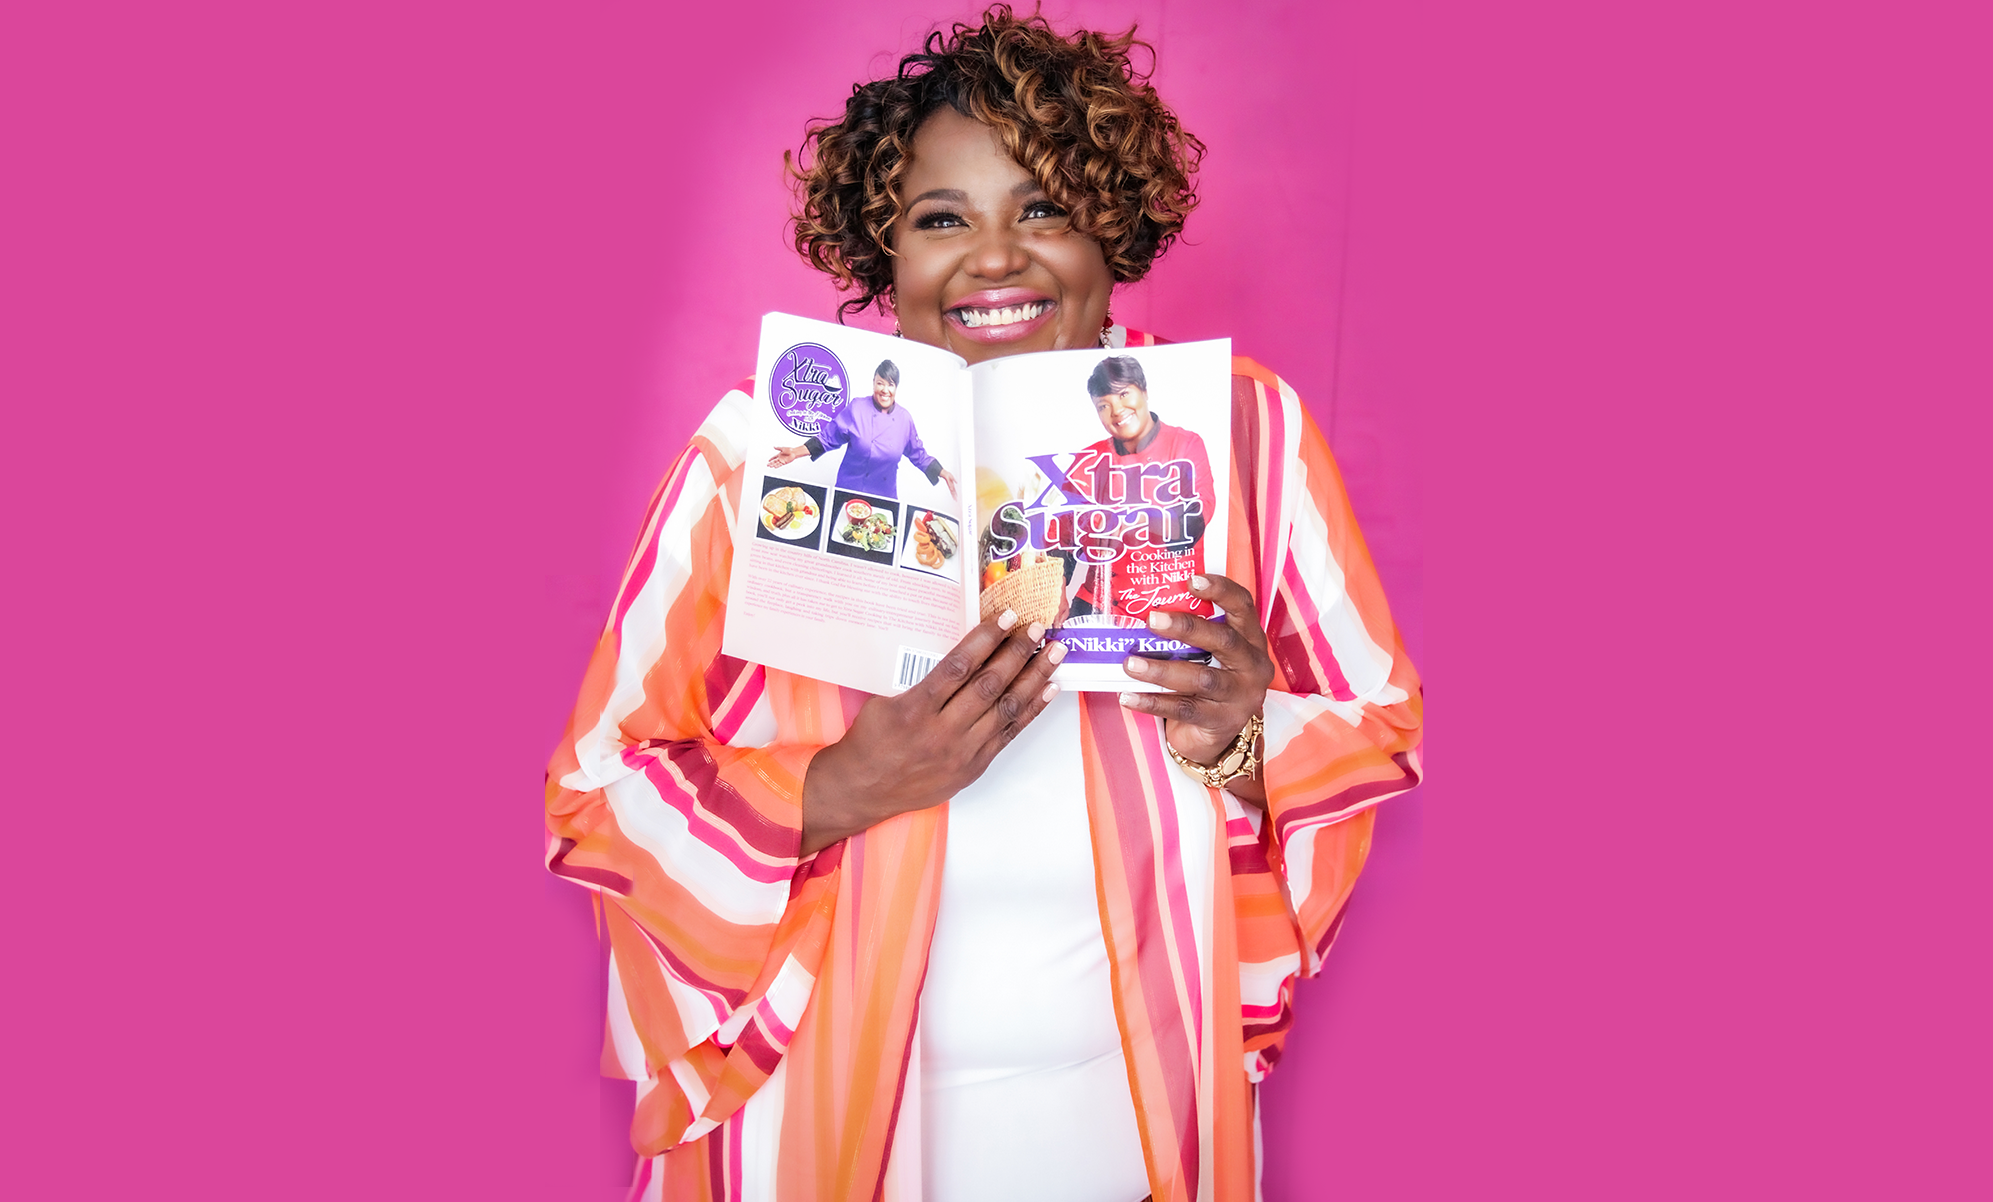 Chef Nikki on a hot pink background holding an opened version of the XtraSugar cookbook